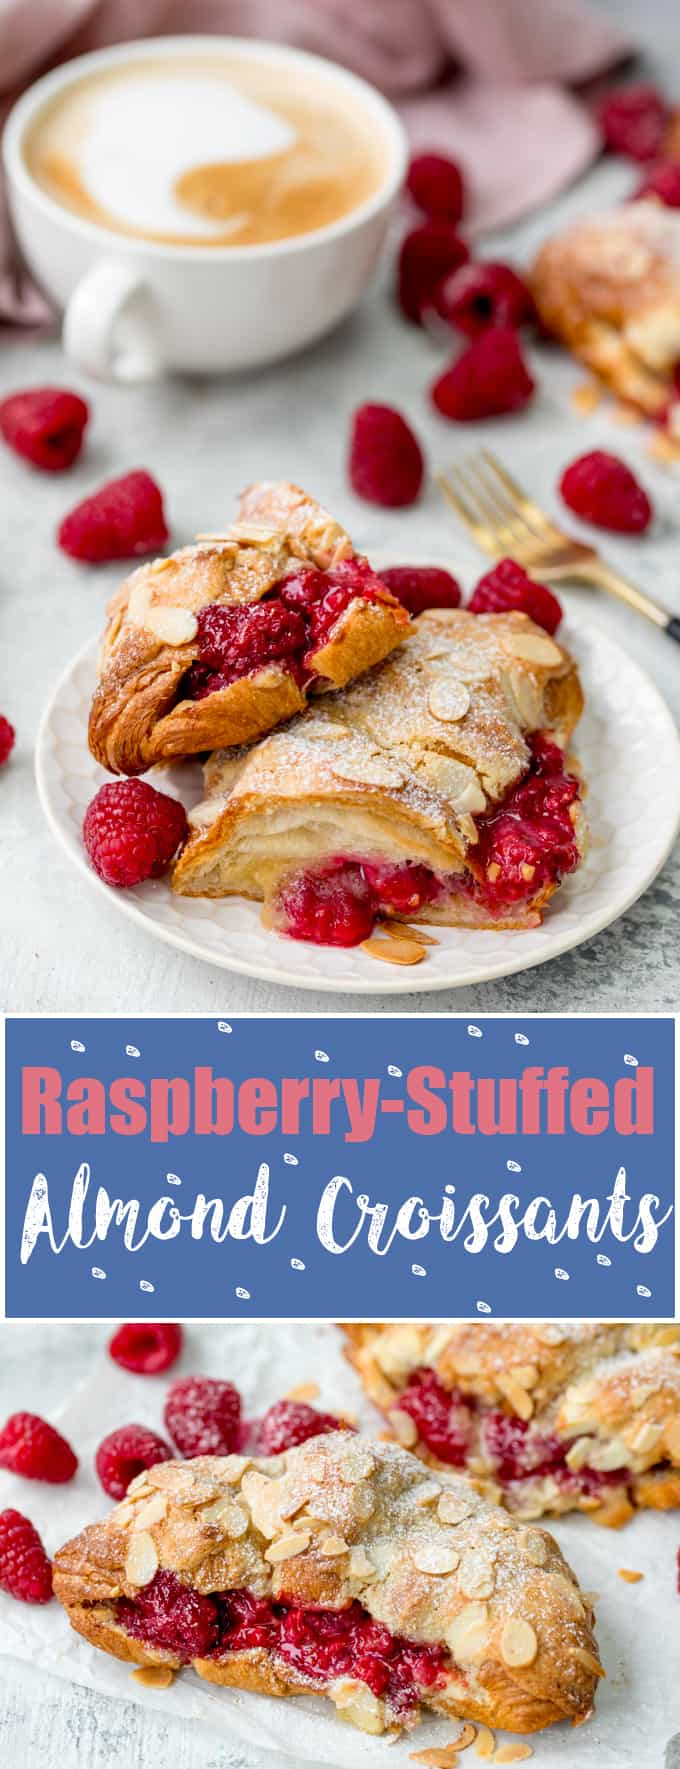 Looking for a breakfast treat? TheseRaspberry and Almond Croissants, filled and topped with frangipane are the best! A great Christmas breakfast! #almondcroissants #christmasbreakfast #mothersdaybreakfast #raspberrycroissant